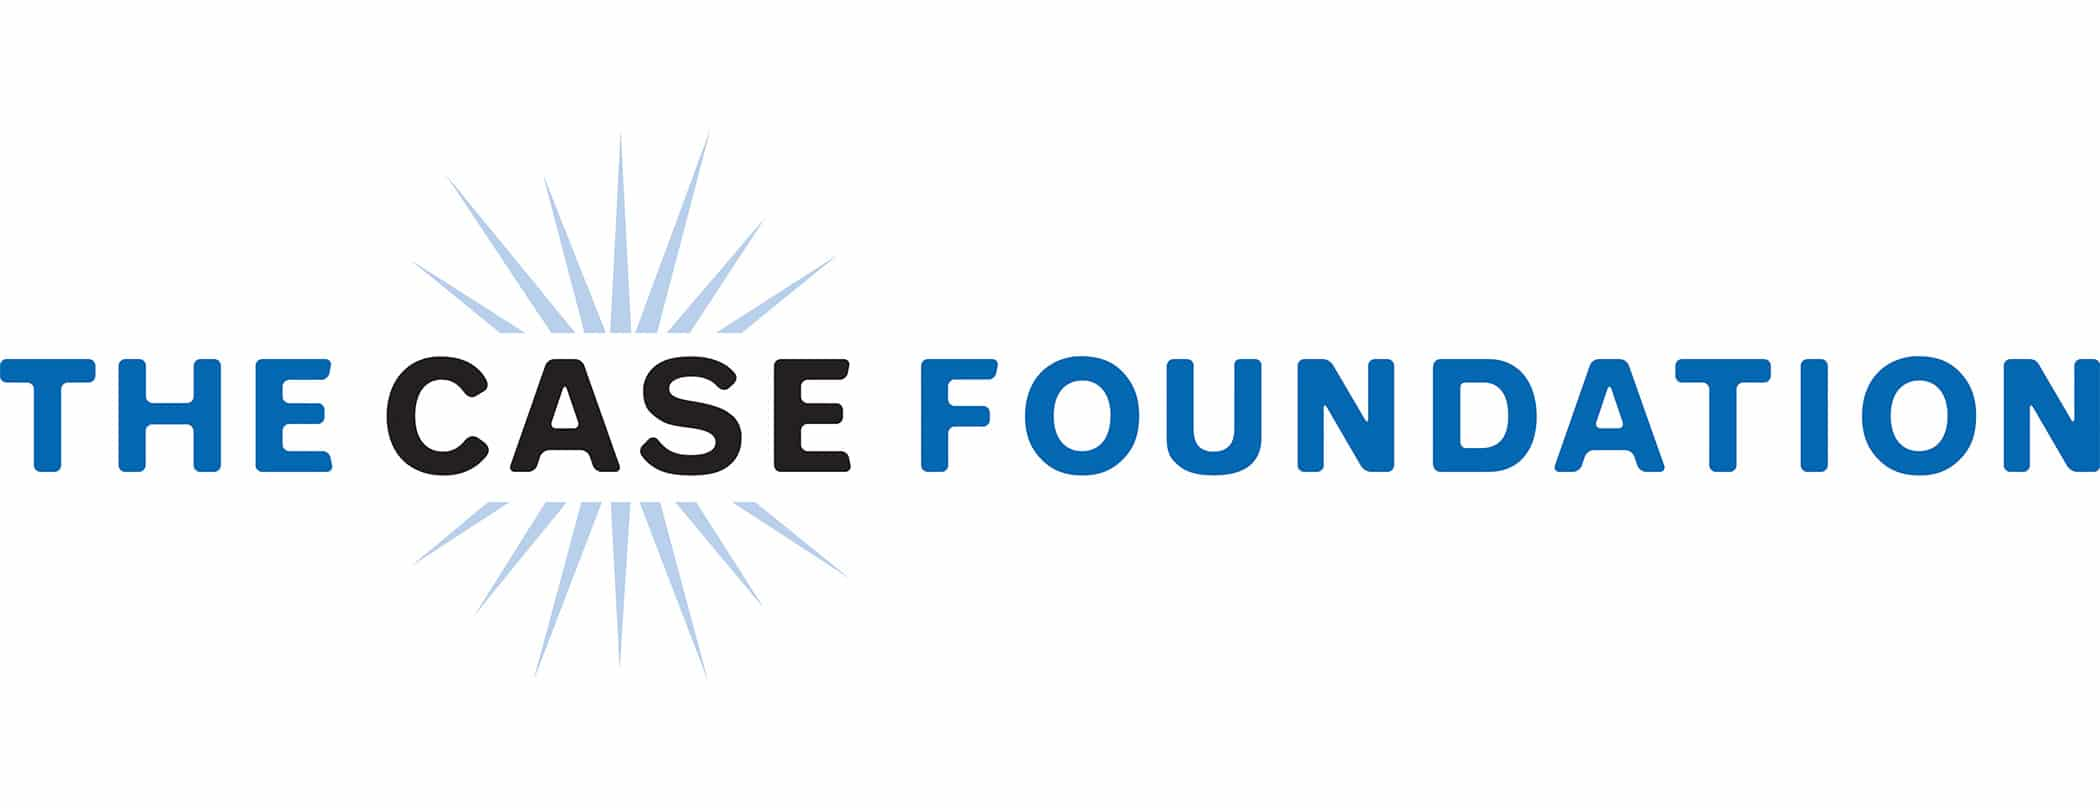 case_foundation_seed_spot 2